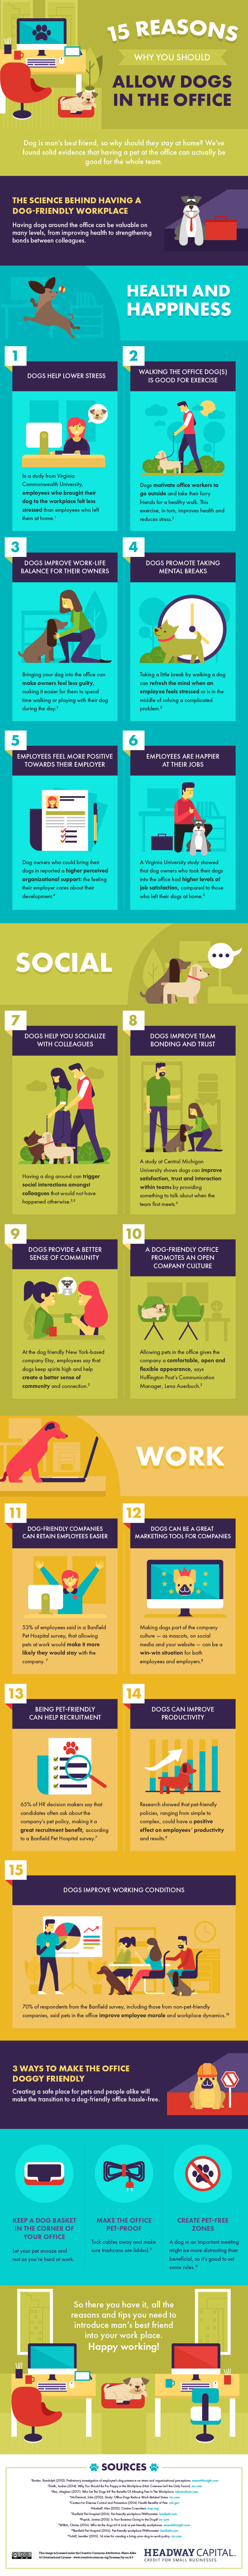 15 Reasons Why Dogs Should Be Allowed in the Office